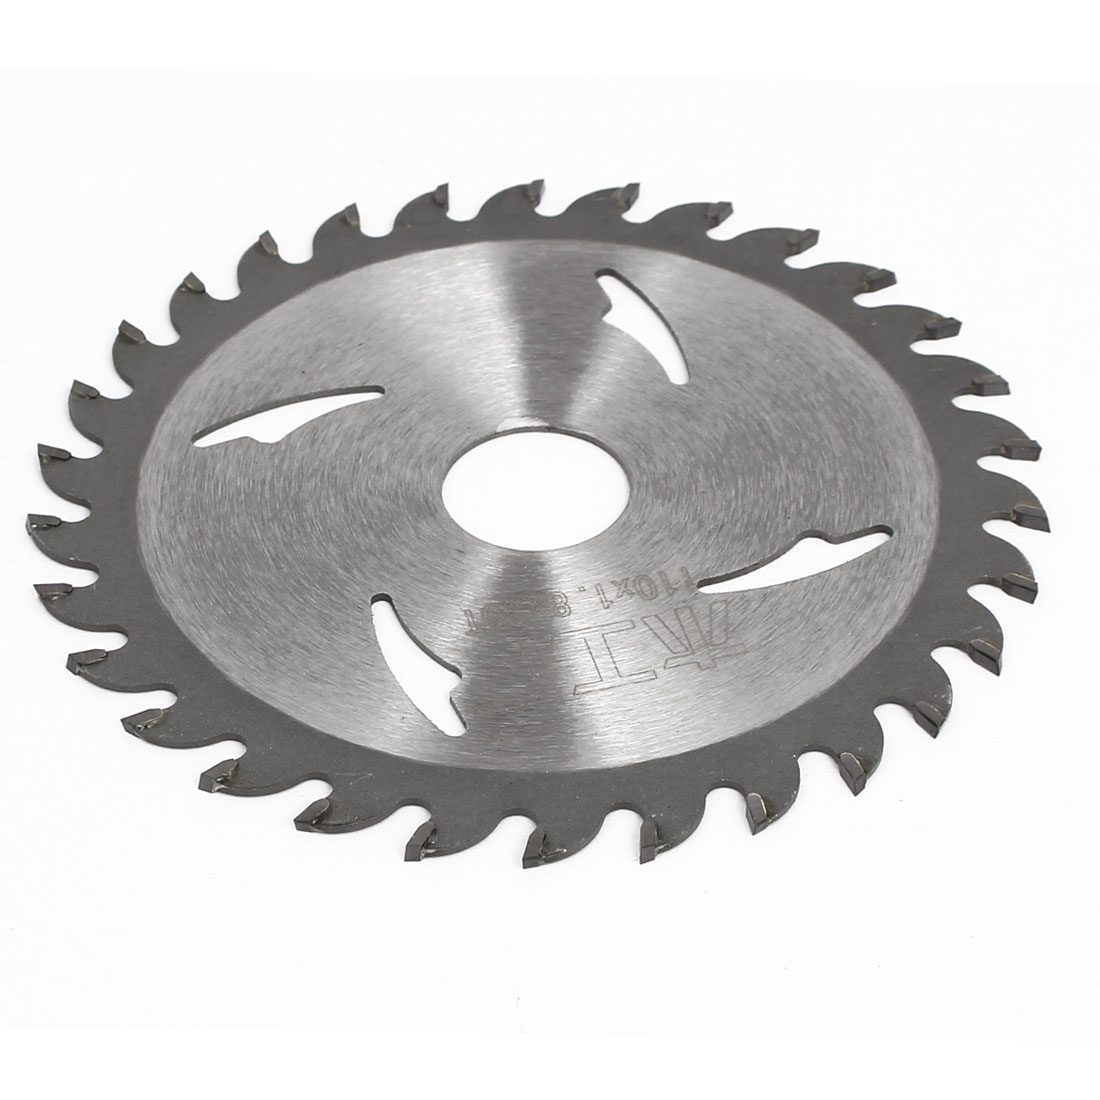 105mm x 20mm x 1mm 30 Teeth Circular Cutting Saw Cutter Hand Tool